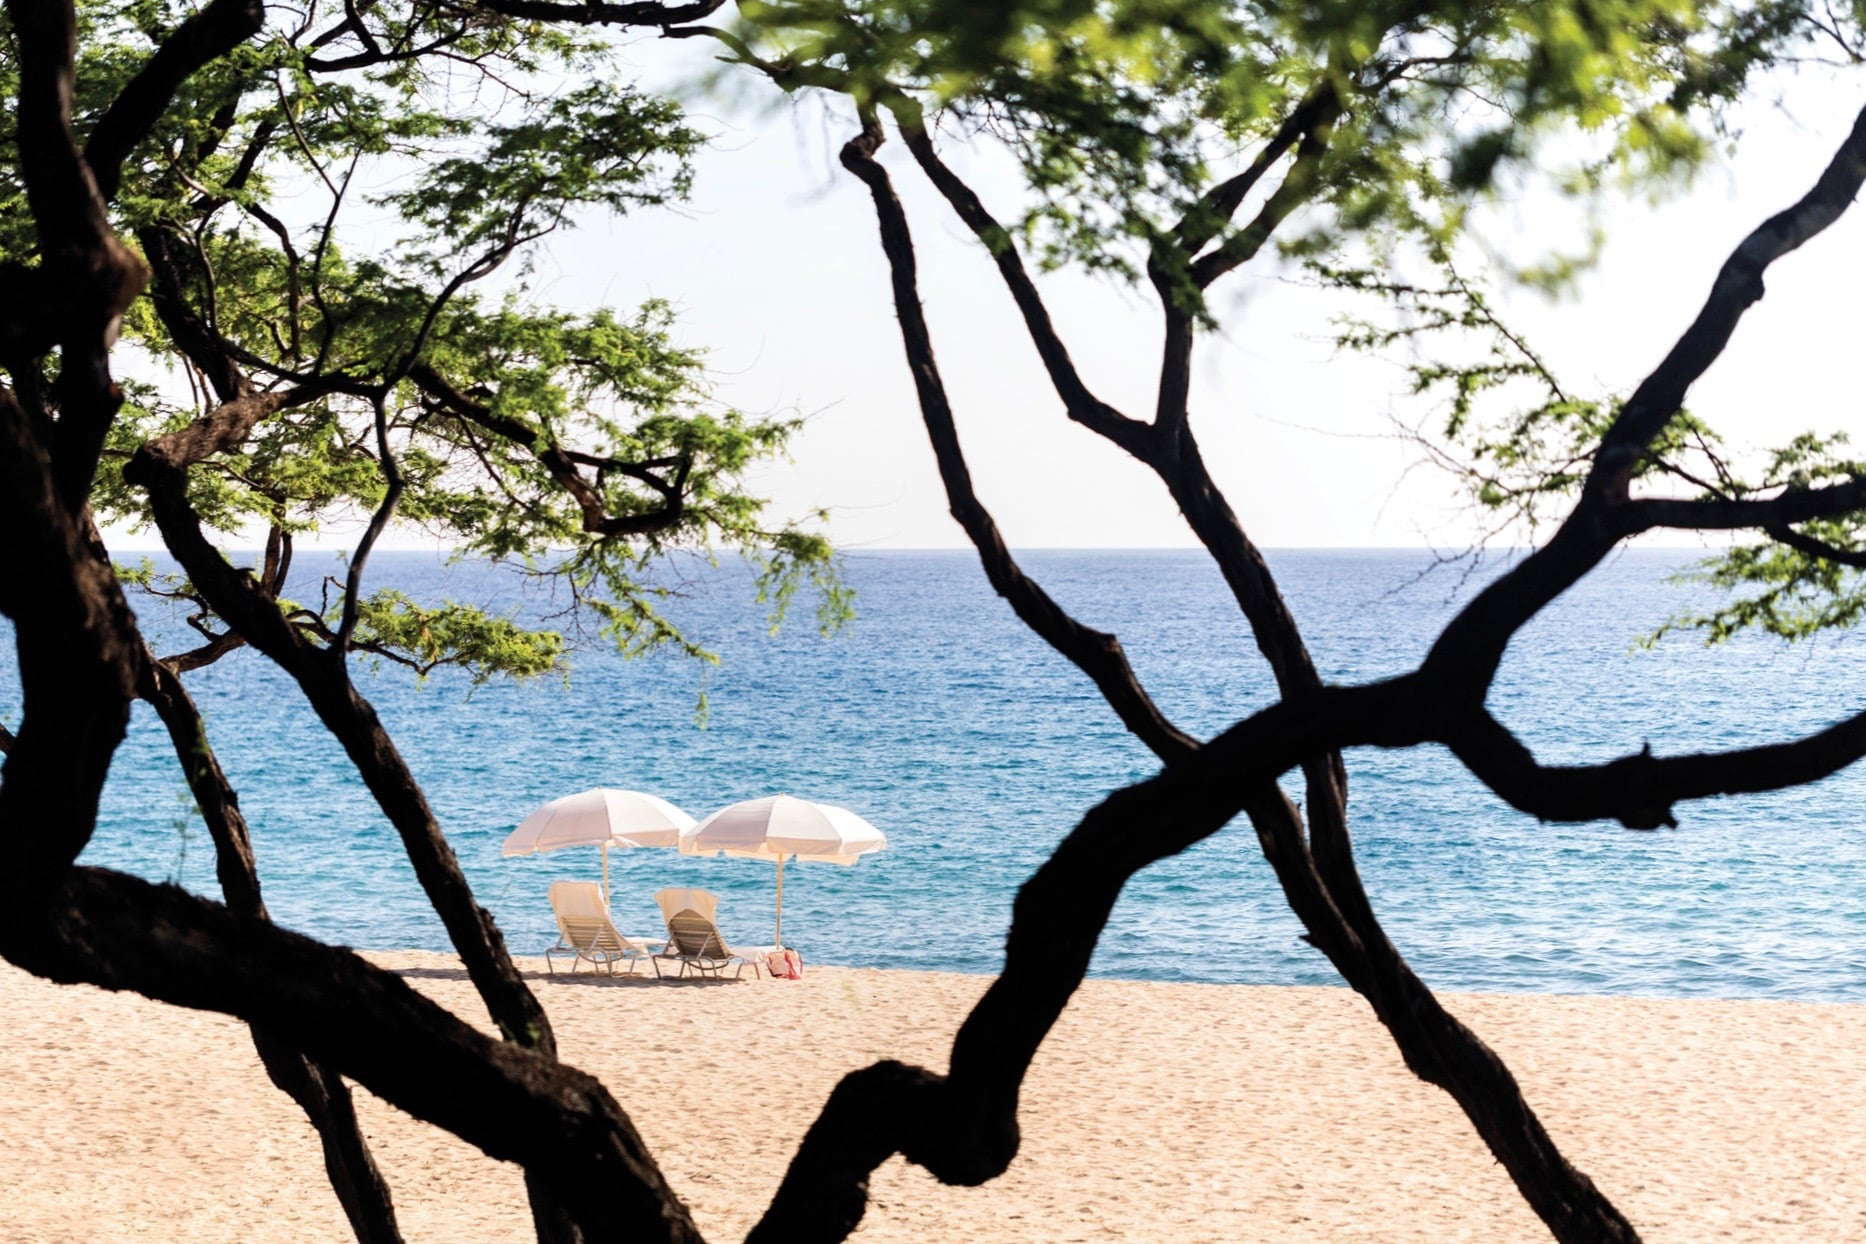 Lanai: The beach at the Four Seasons Lanai, one of my favorite hotels on PLANET EARTH {which just went through an extensive top-to-bottom reno} and is one of the most picture-perfect properties I've ever visited {photo via resort}.